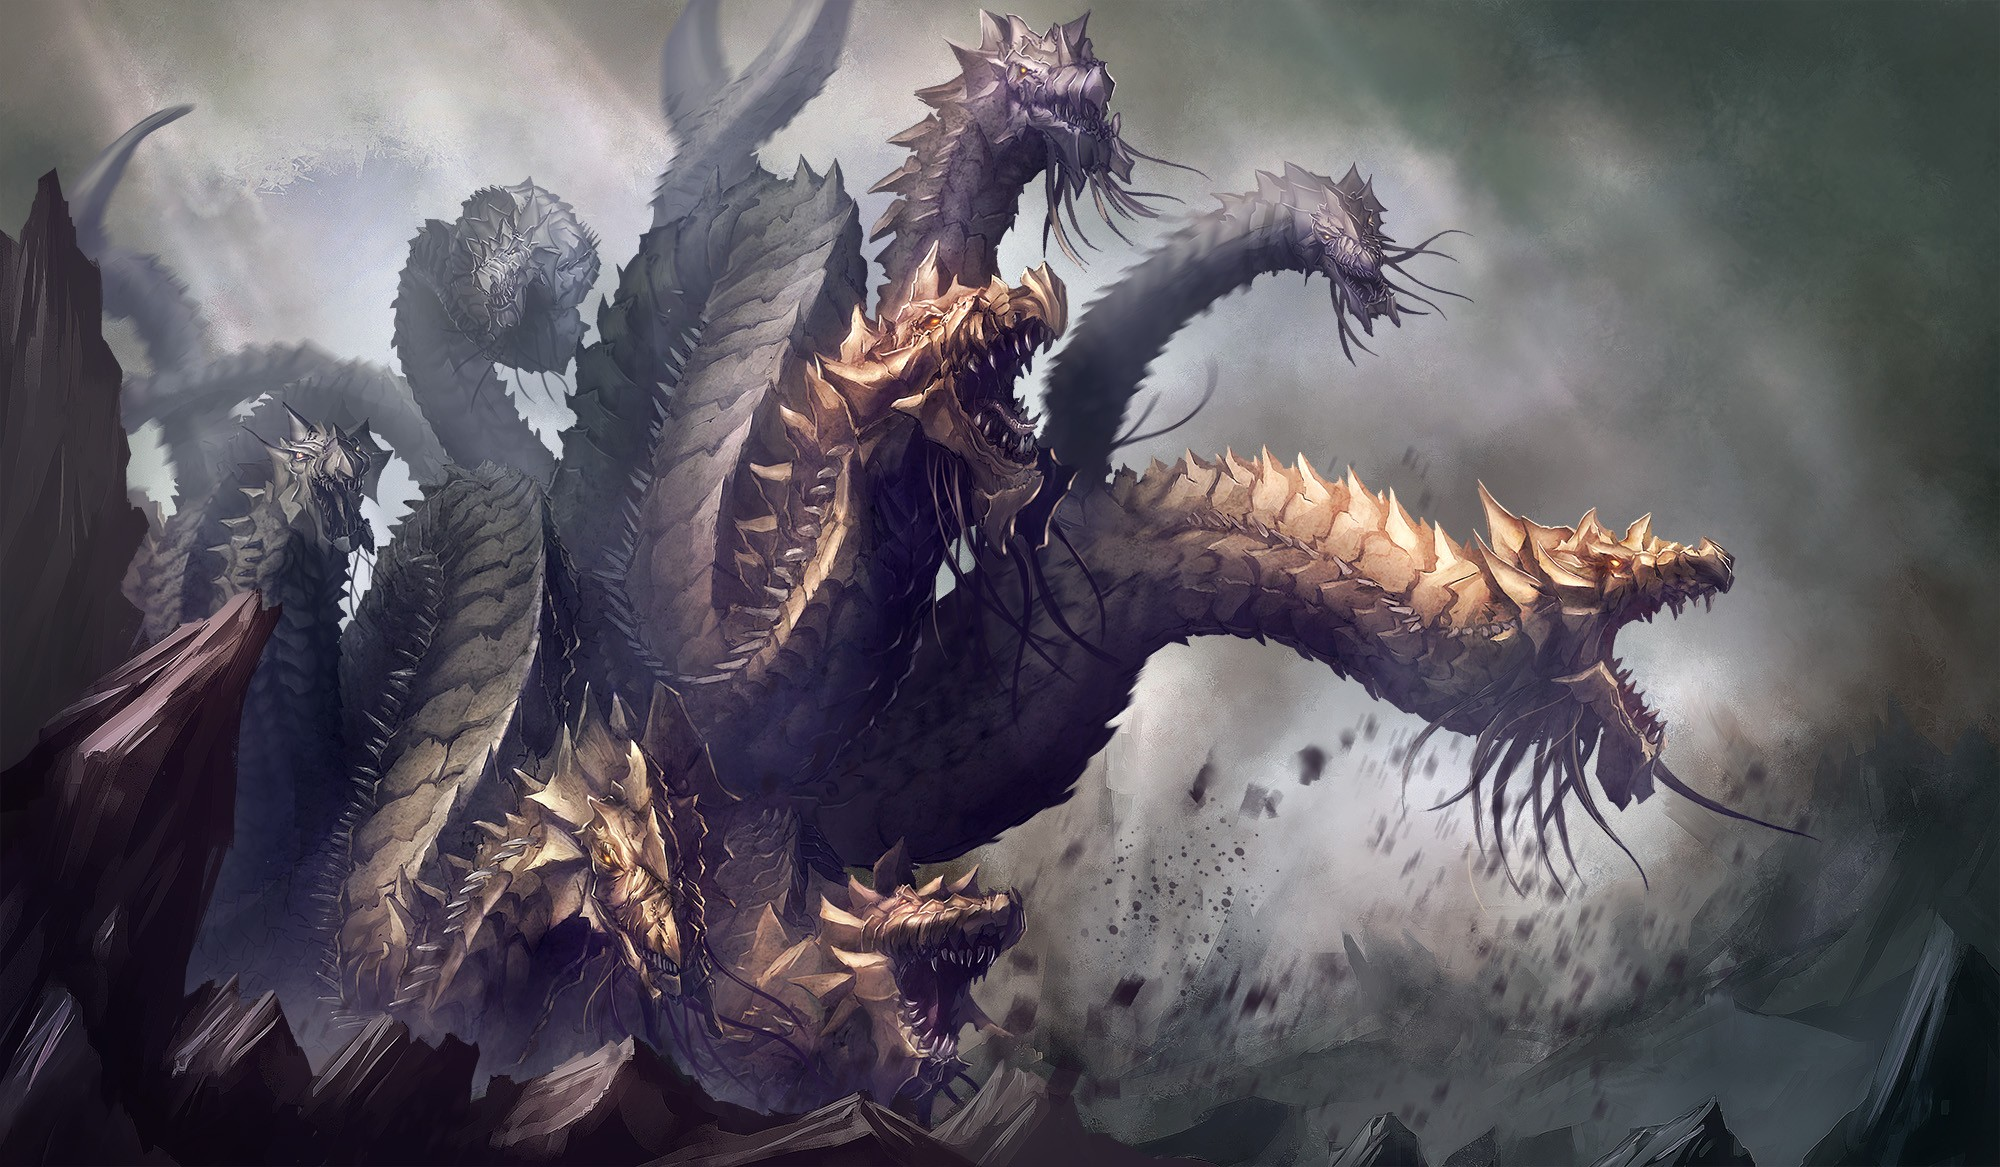 And Dark Souls Dungeons Dragons